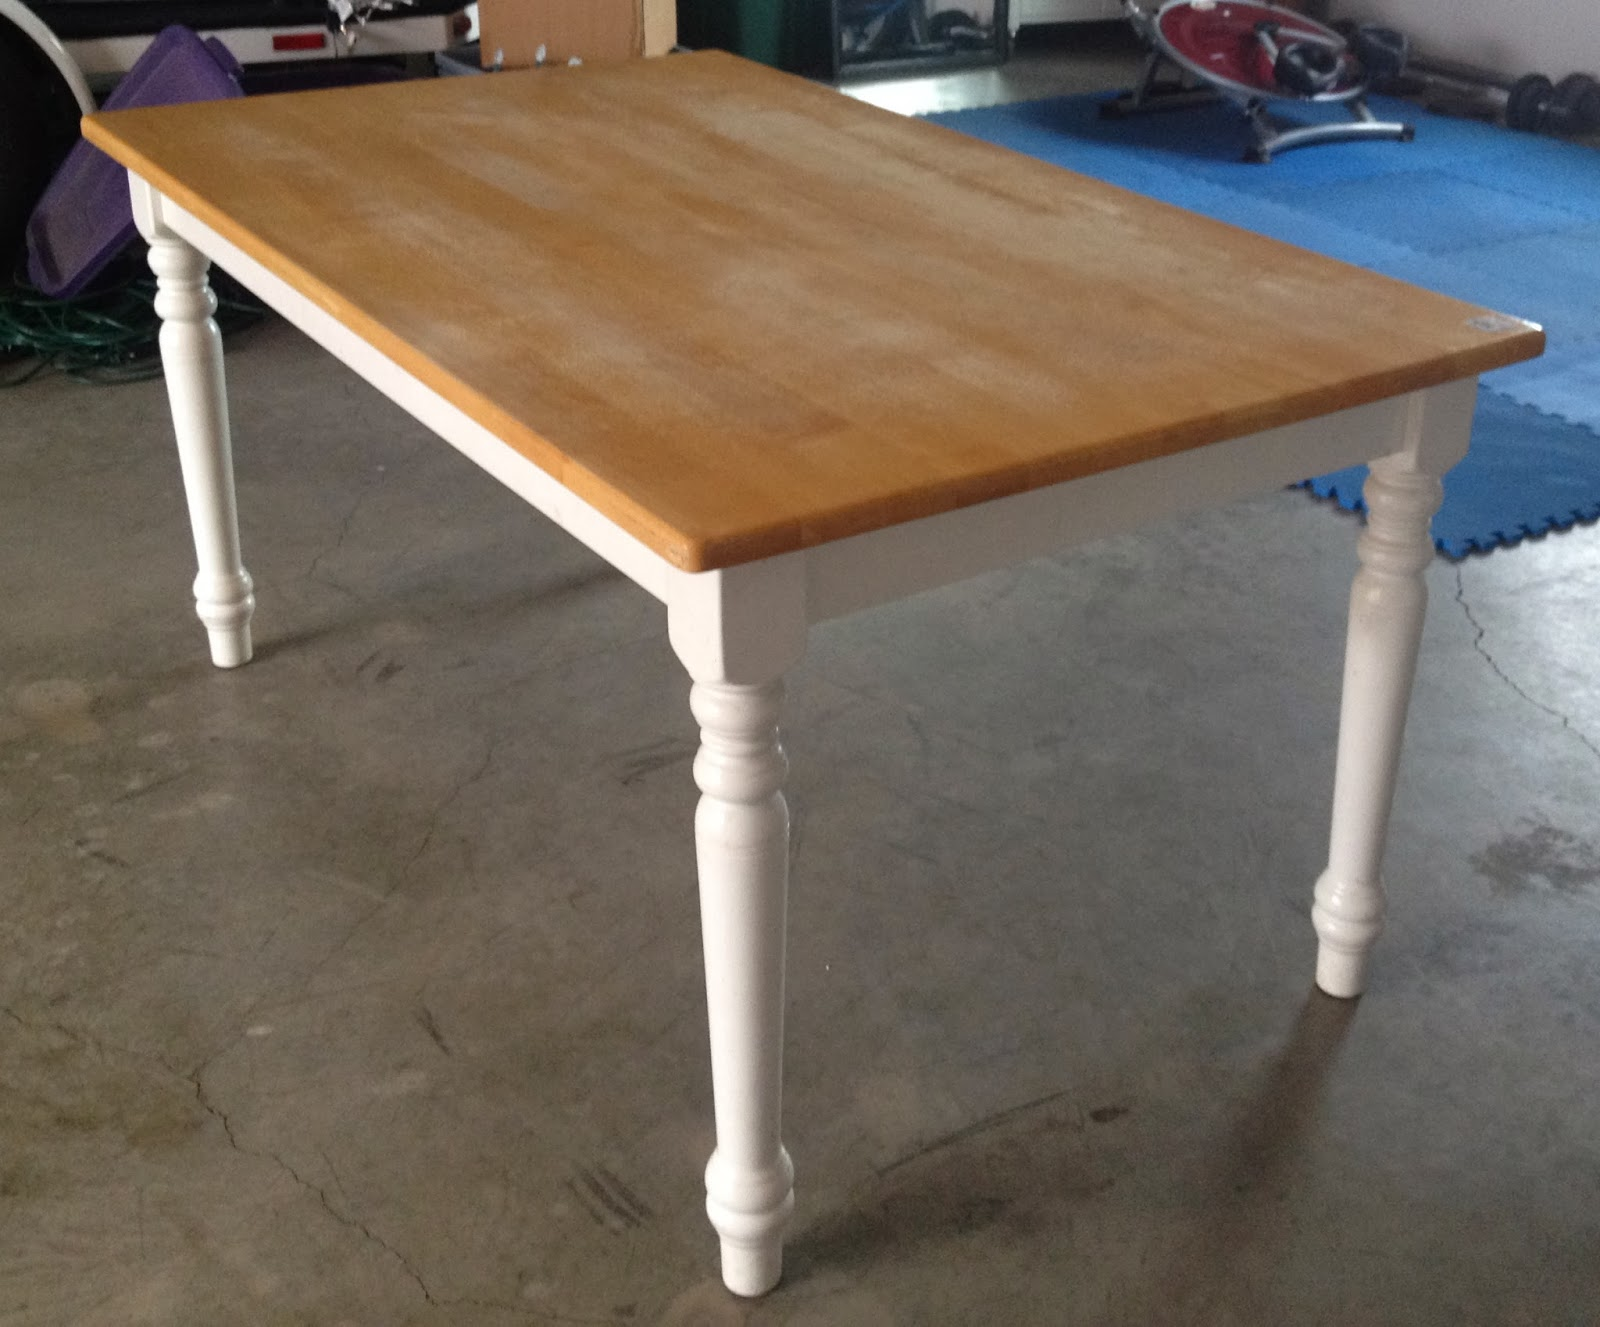 The Daily Debut Annie Sloan Chalk Paint Wax Table Refinish